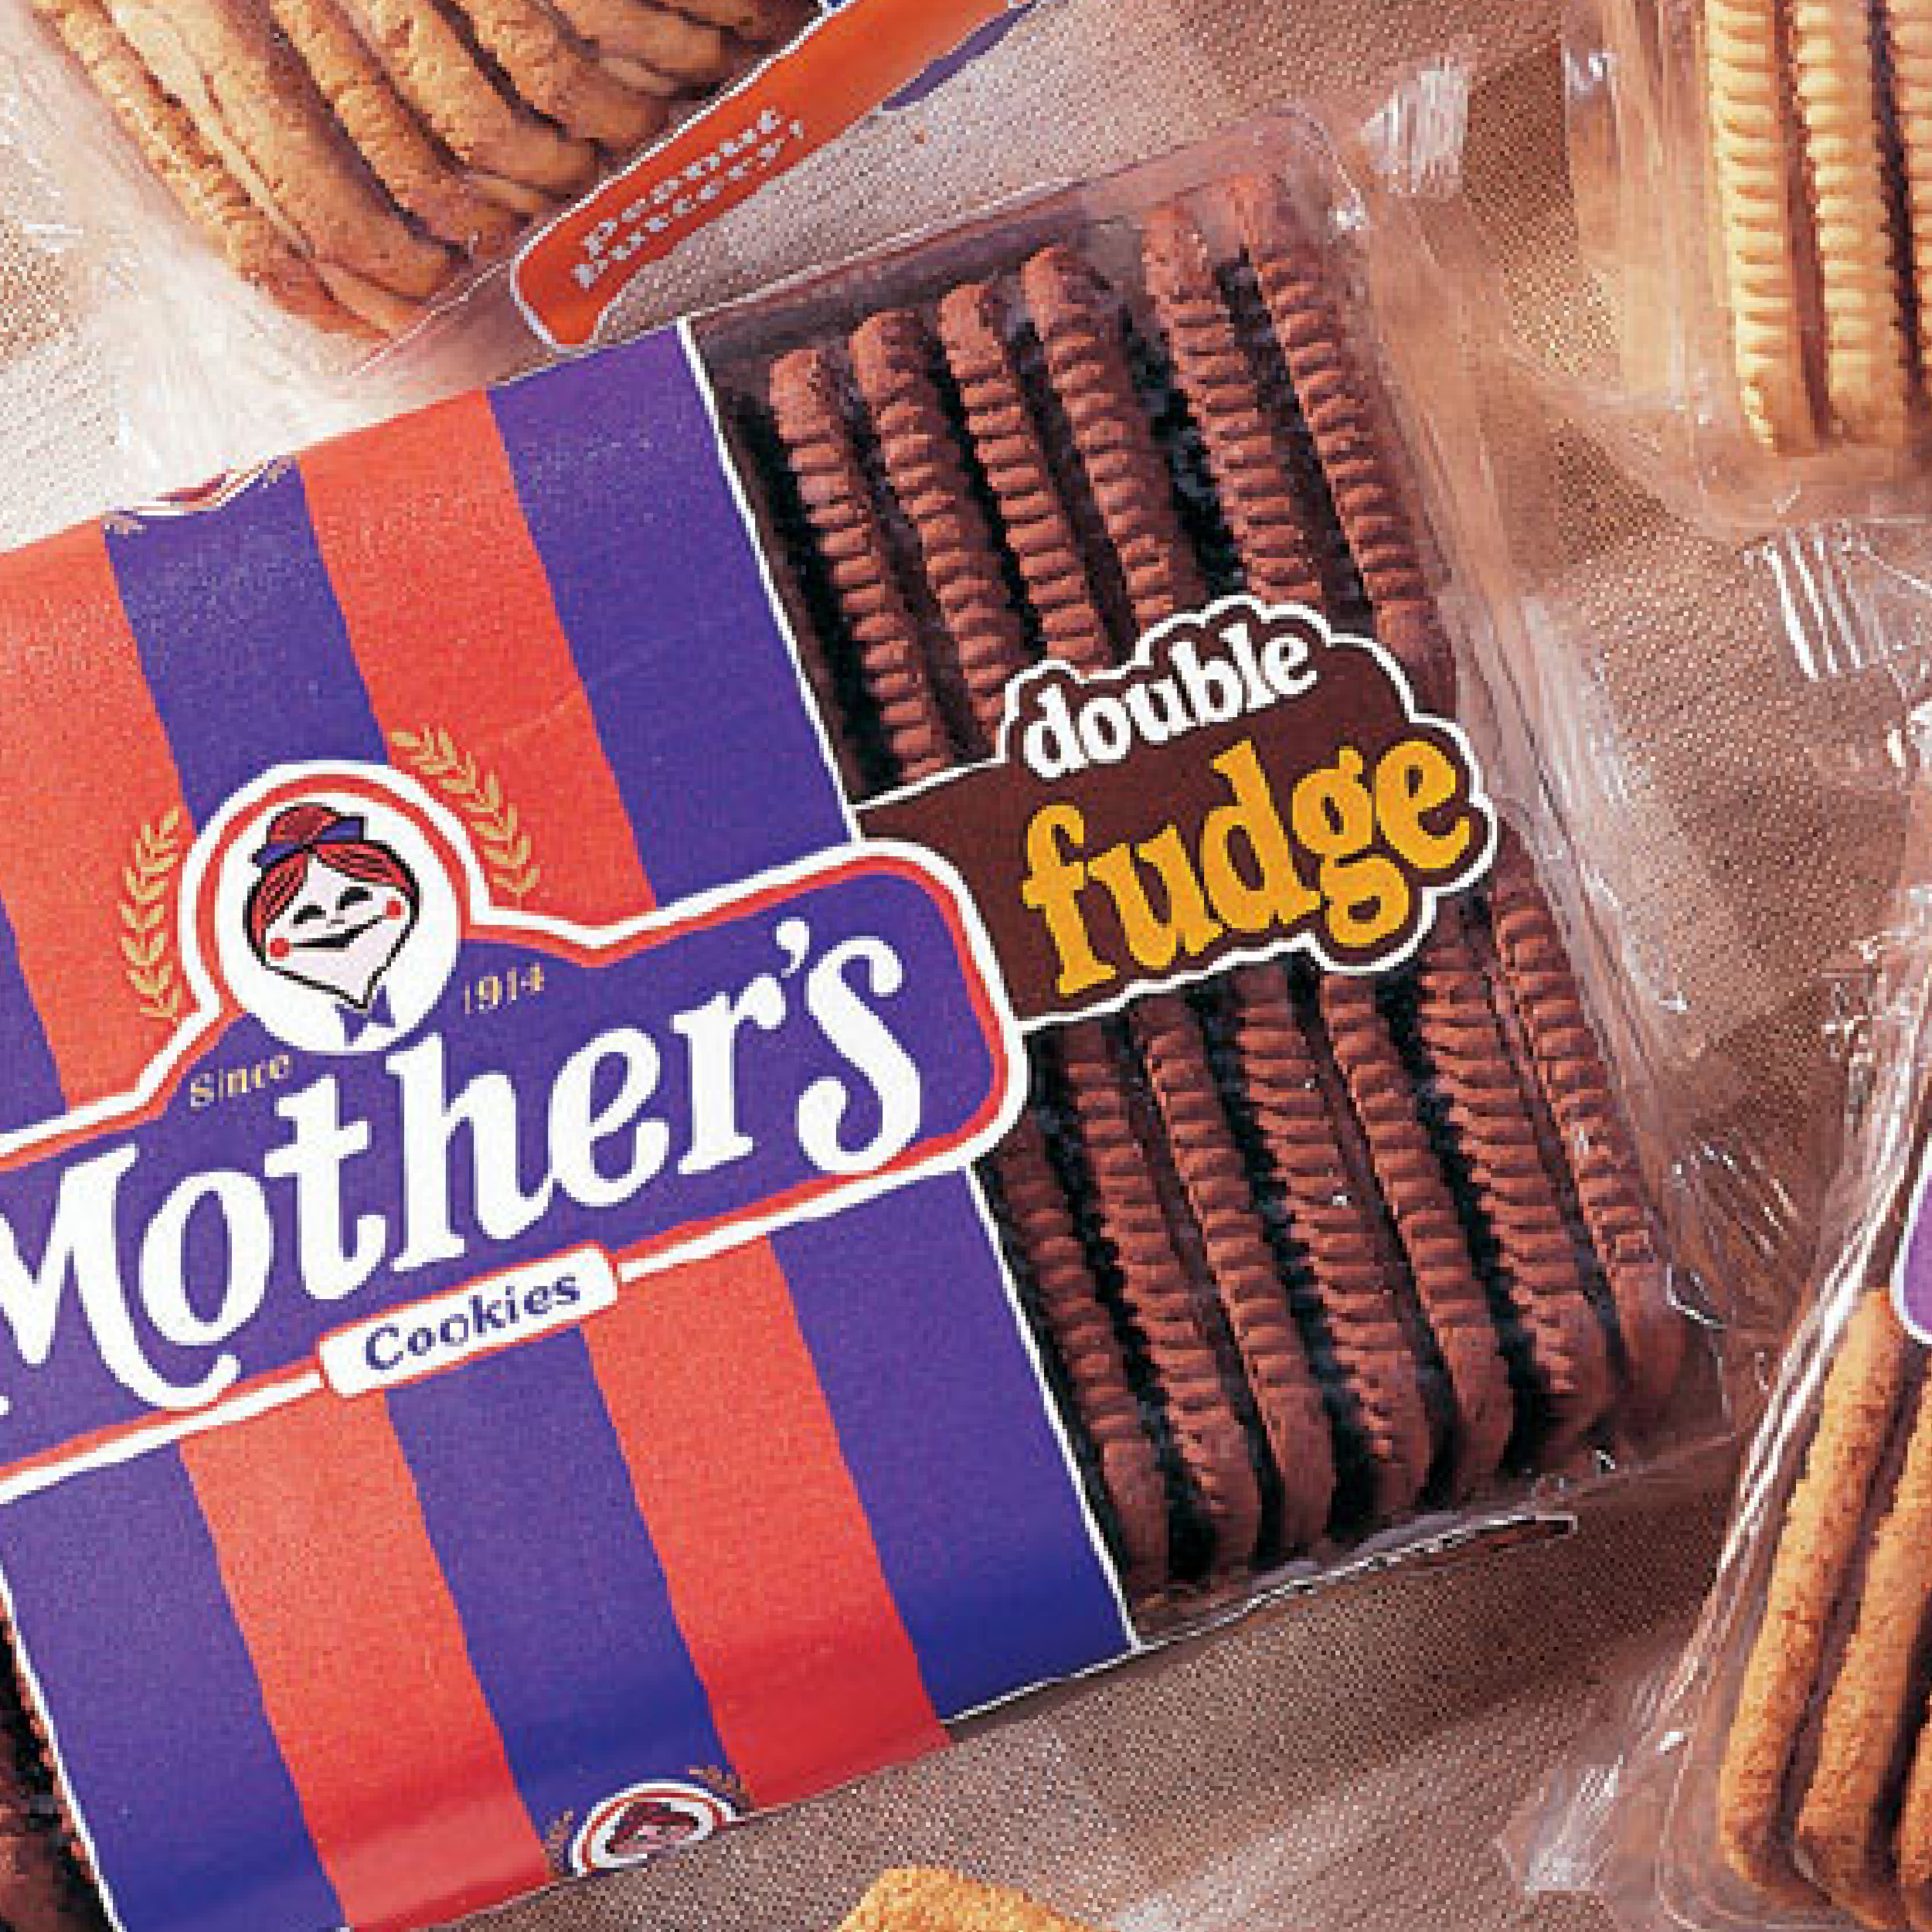 MOTHER'S | COOKIES   ACQUISITION STRATEGY INCREASES SALES 28%